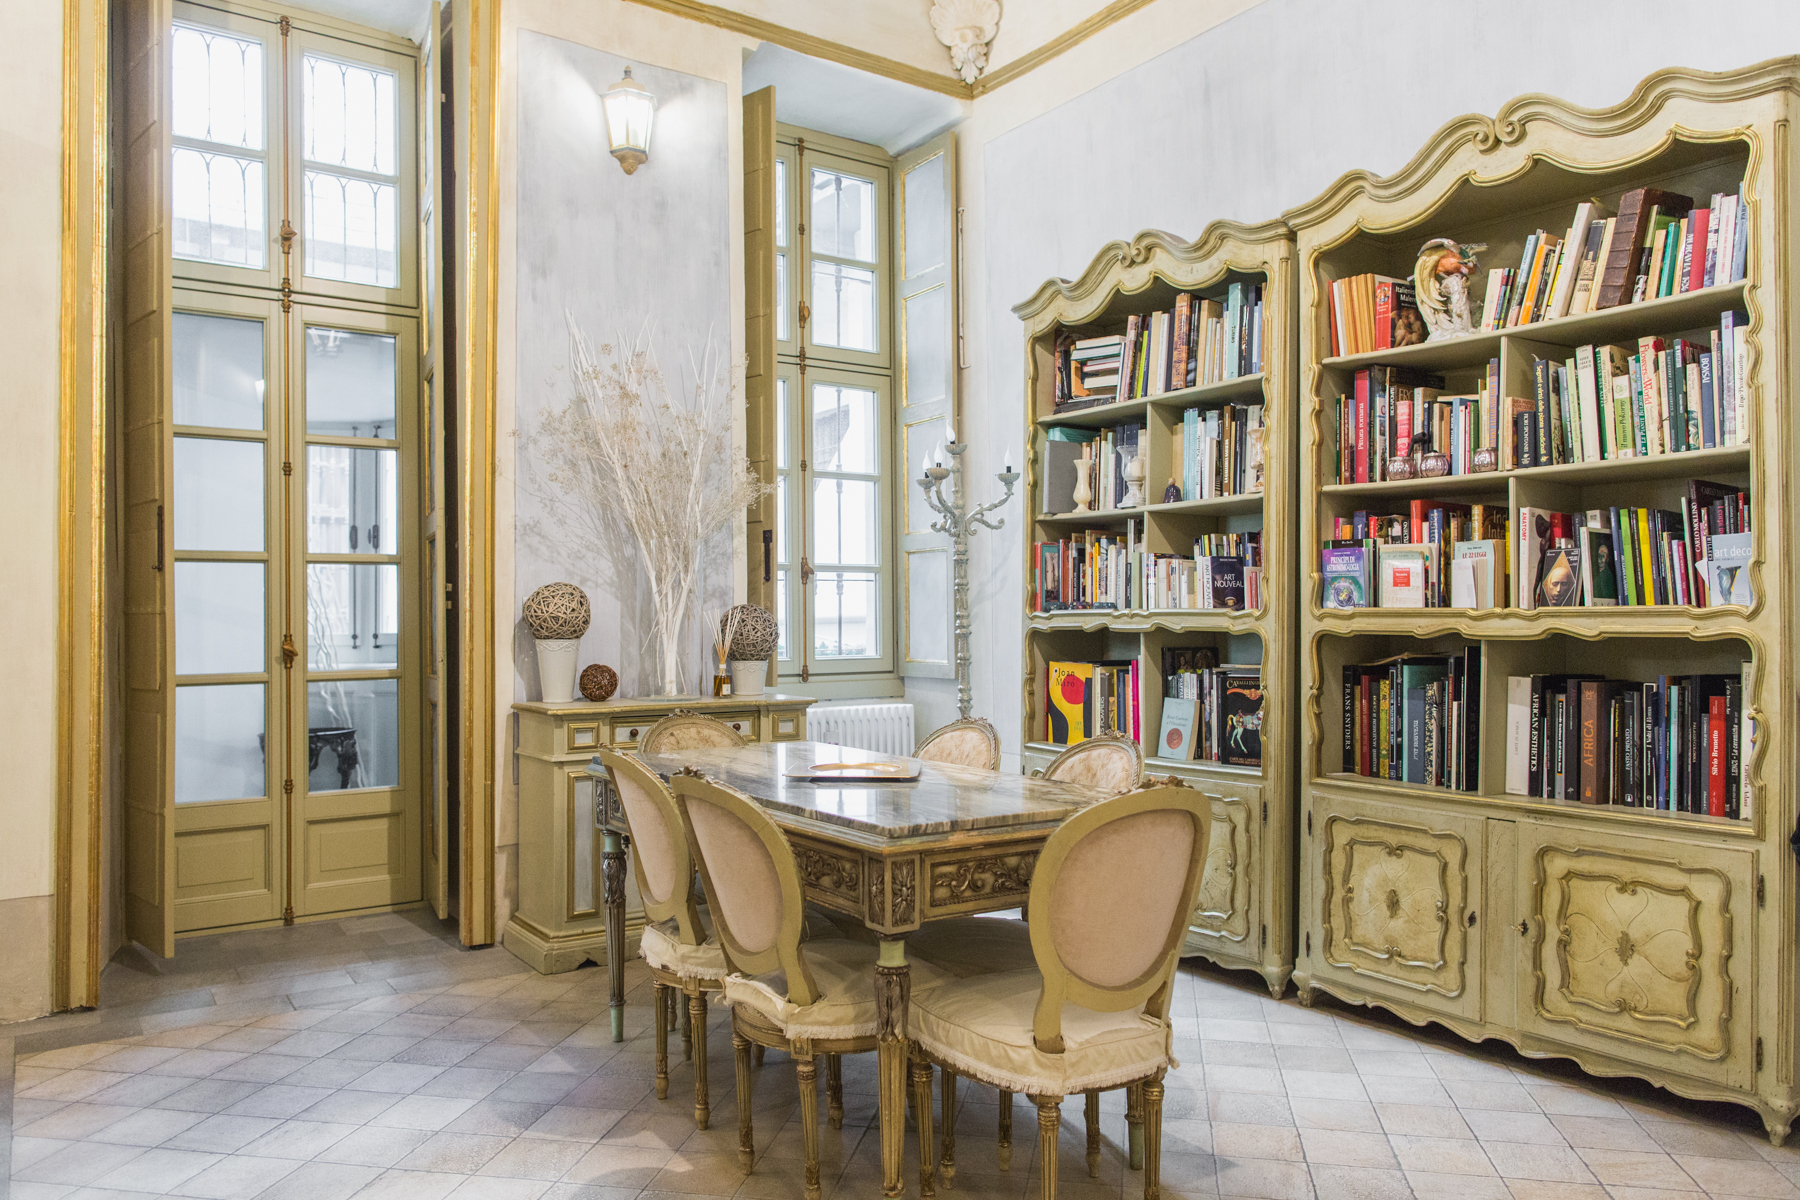 Additional photo for property listing at Elegant and fascinating apartment in the historical center of Turin Via Conte Verde 1 Turin, Turin 10122 Italia